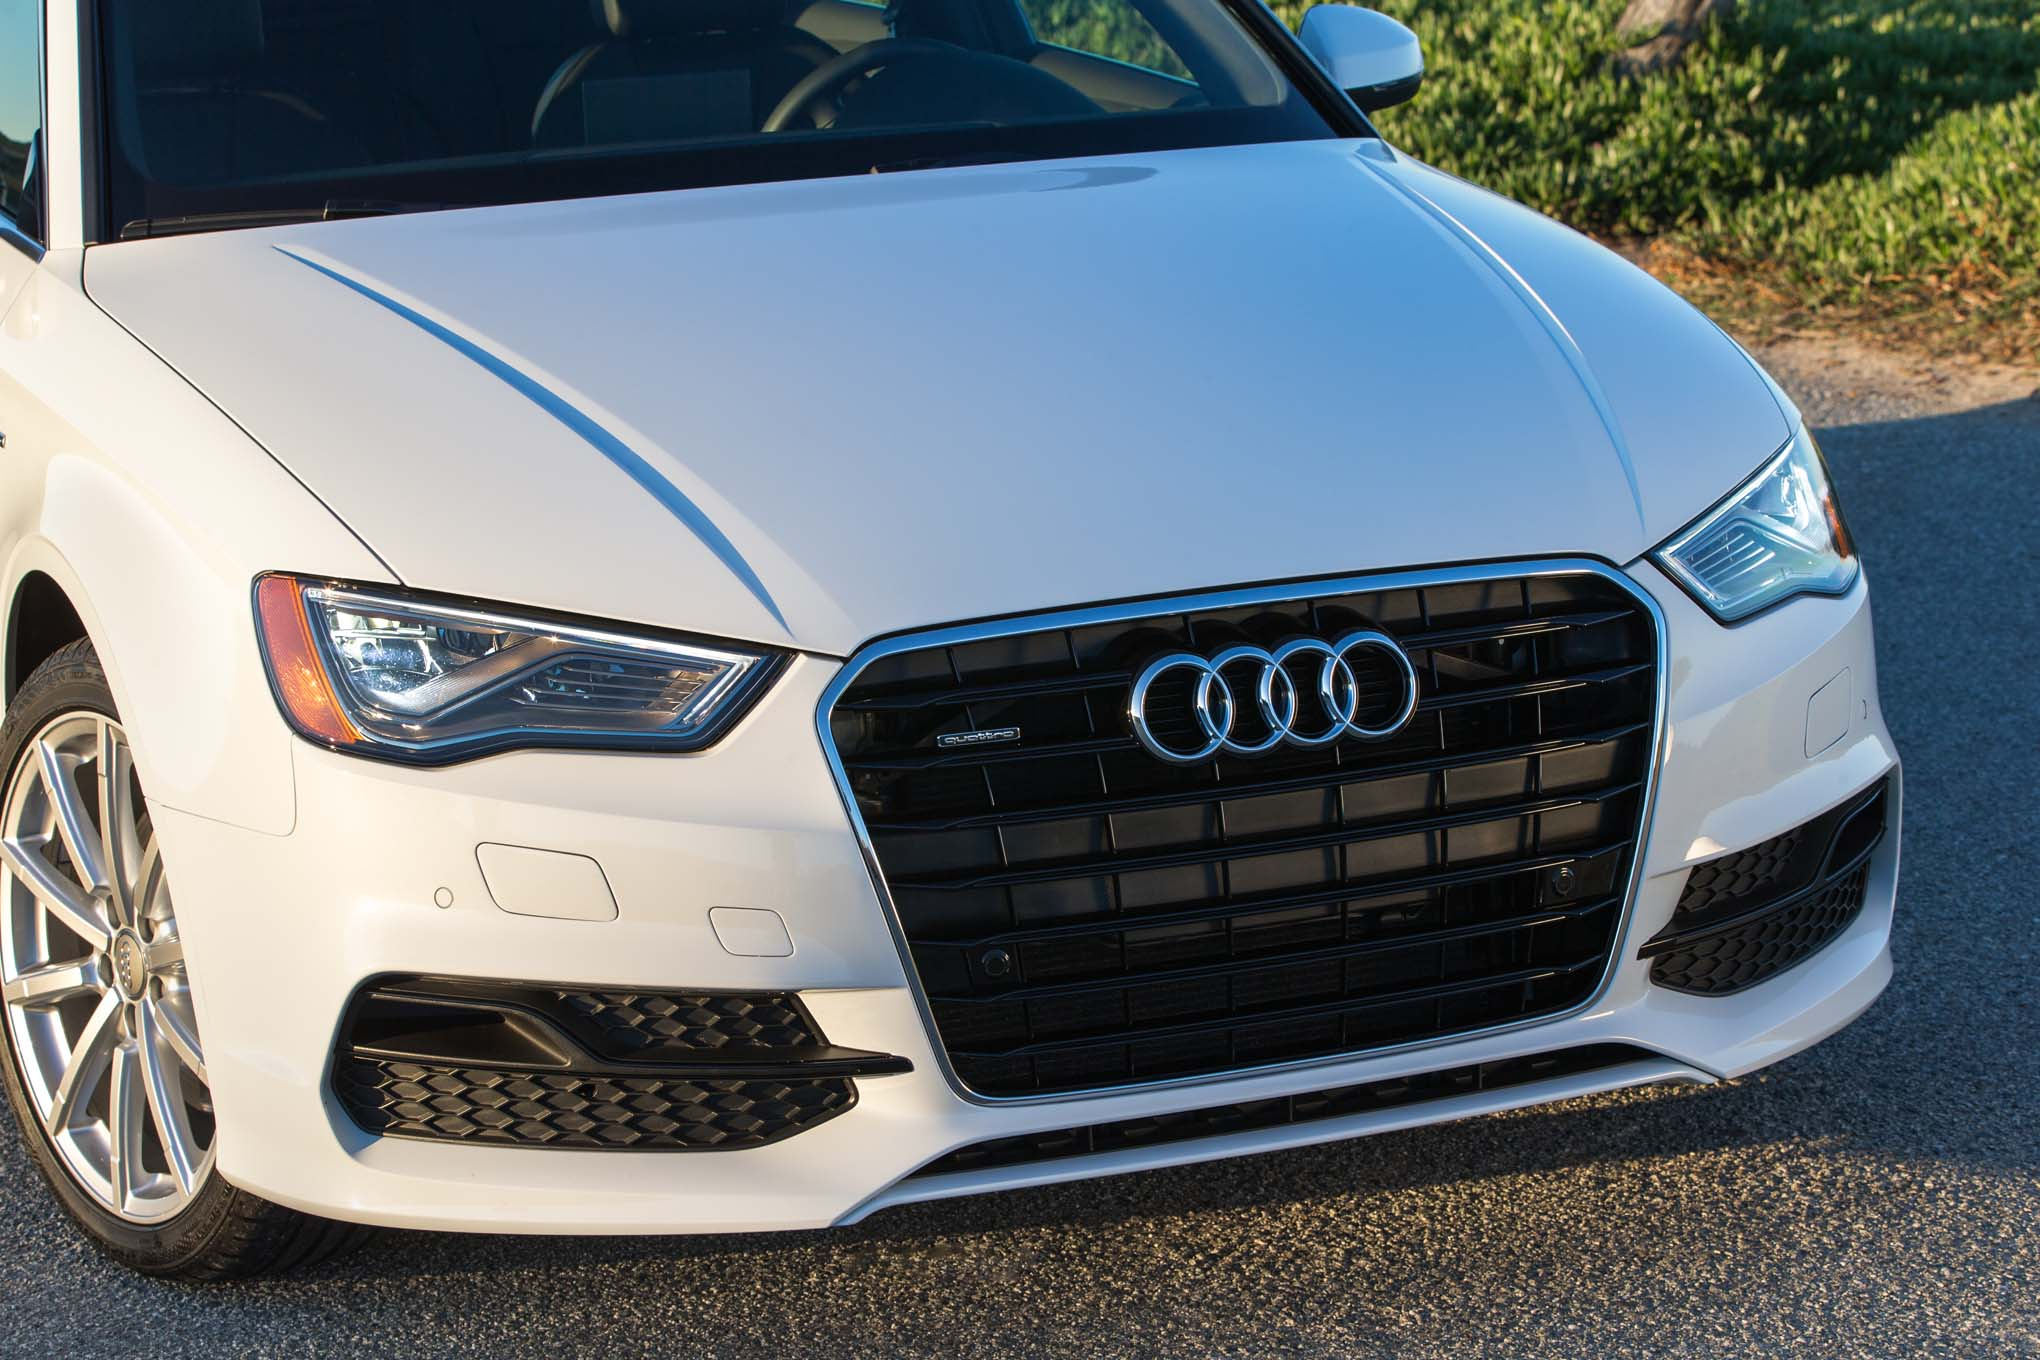 2015 Audi A3 Review - Automobile Magazine